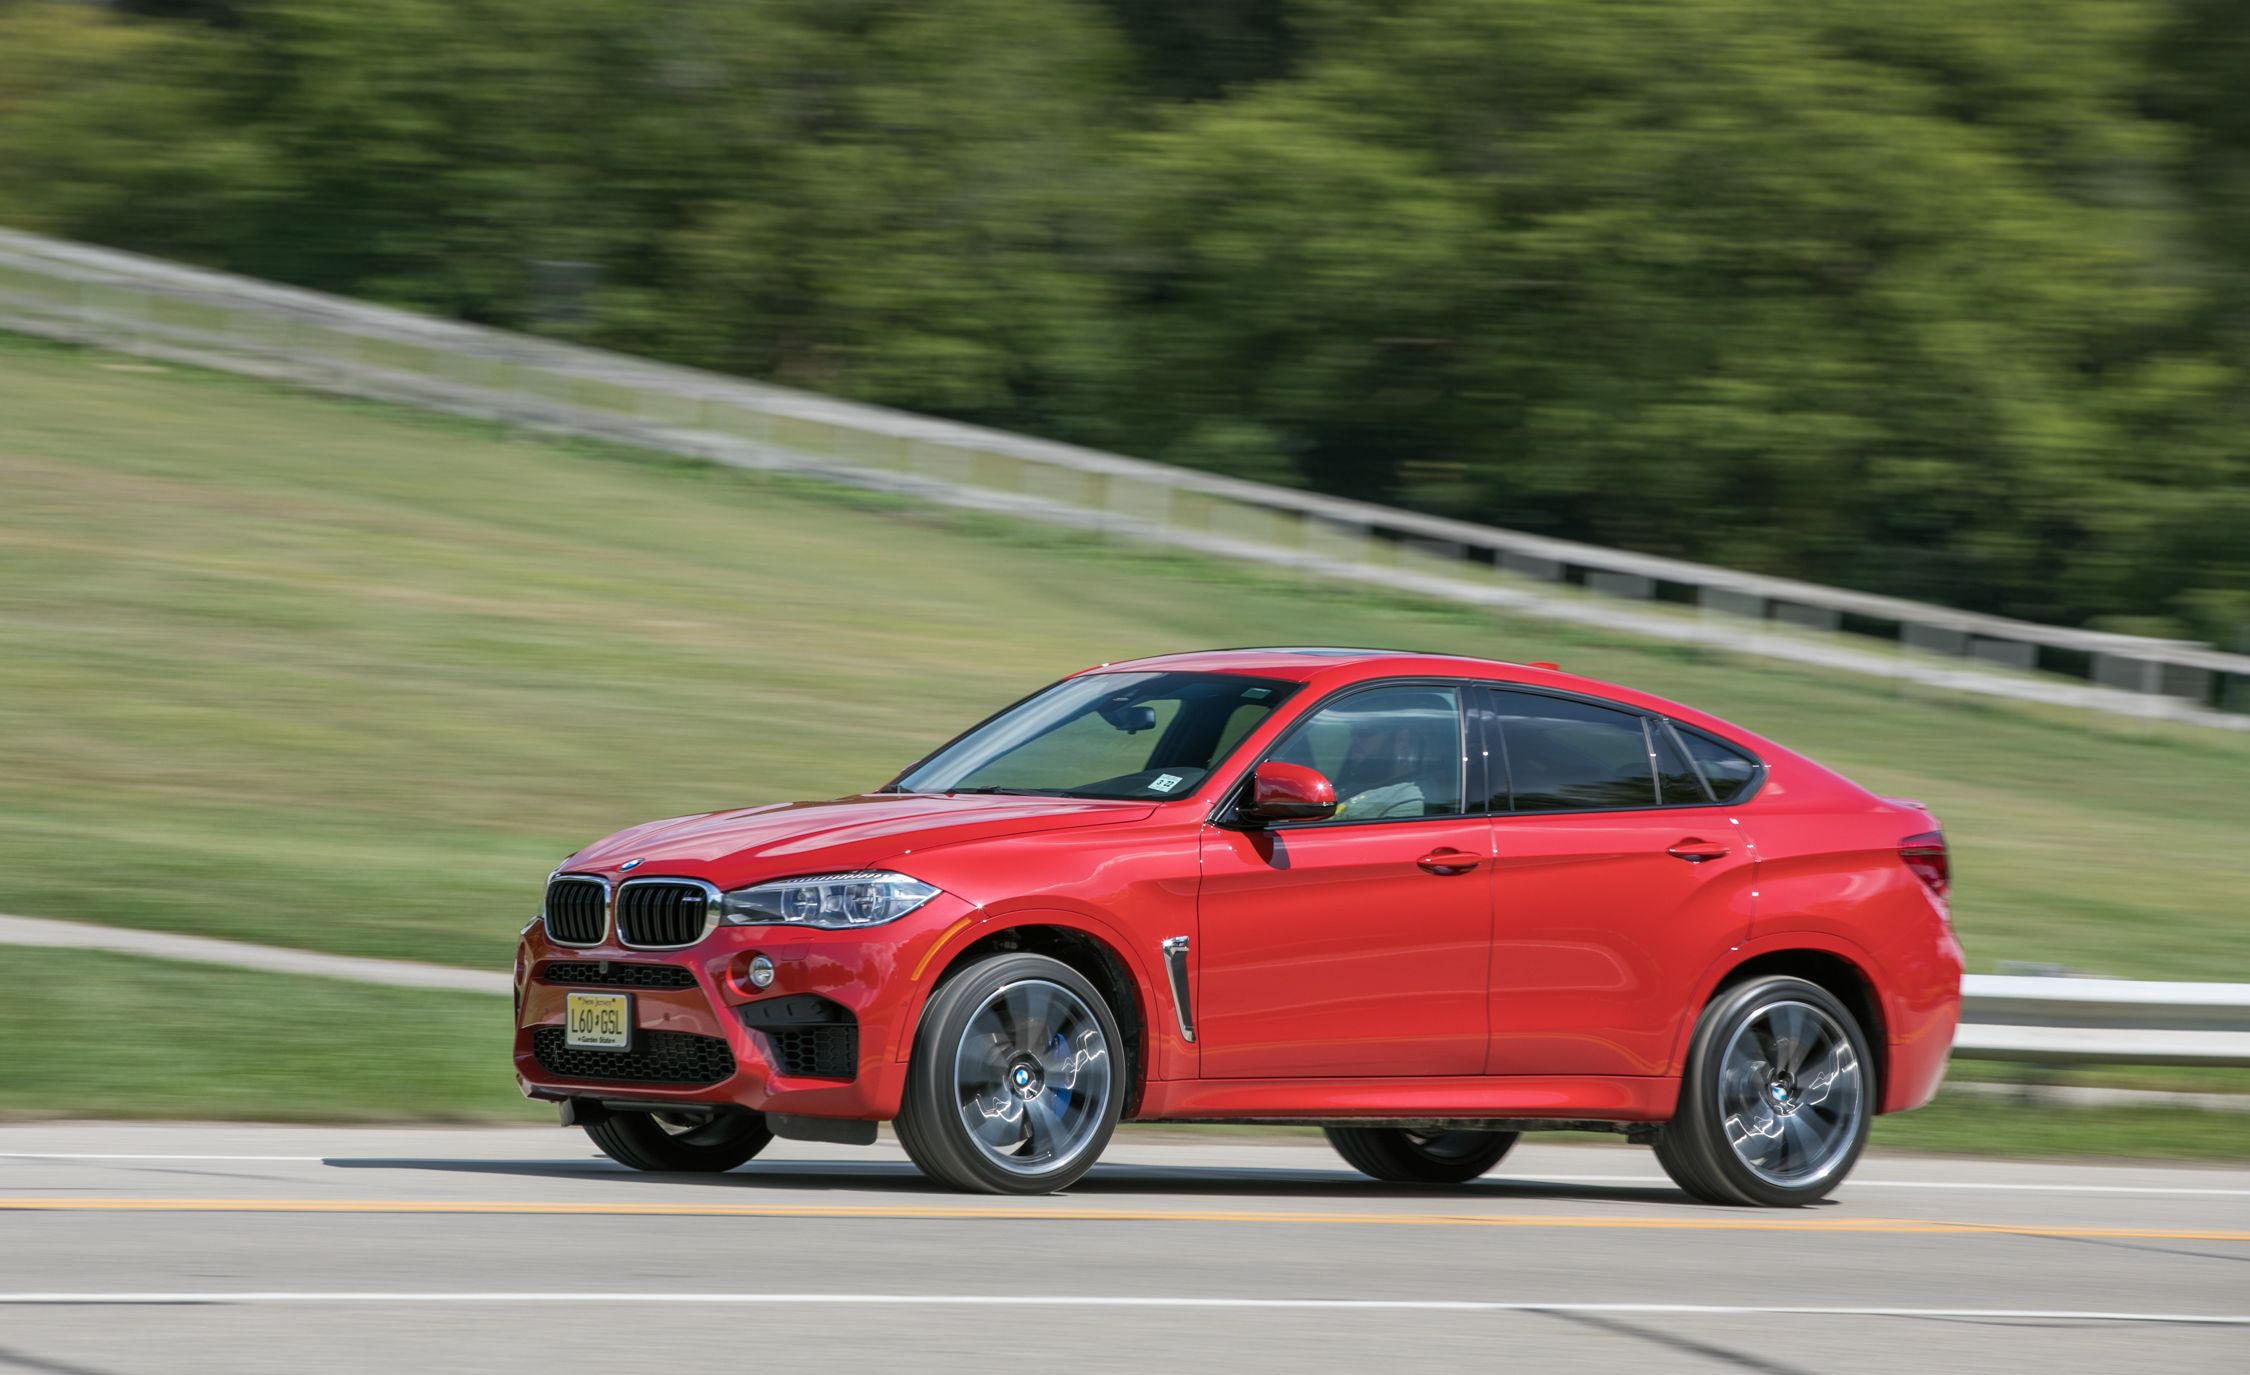 BMW X6 M Reviews BMW X6 M Price s and Specs